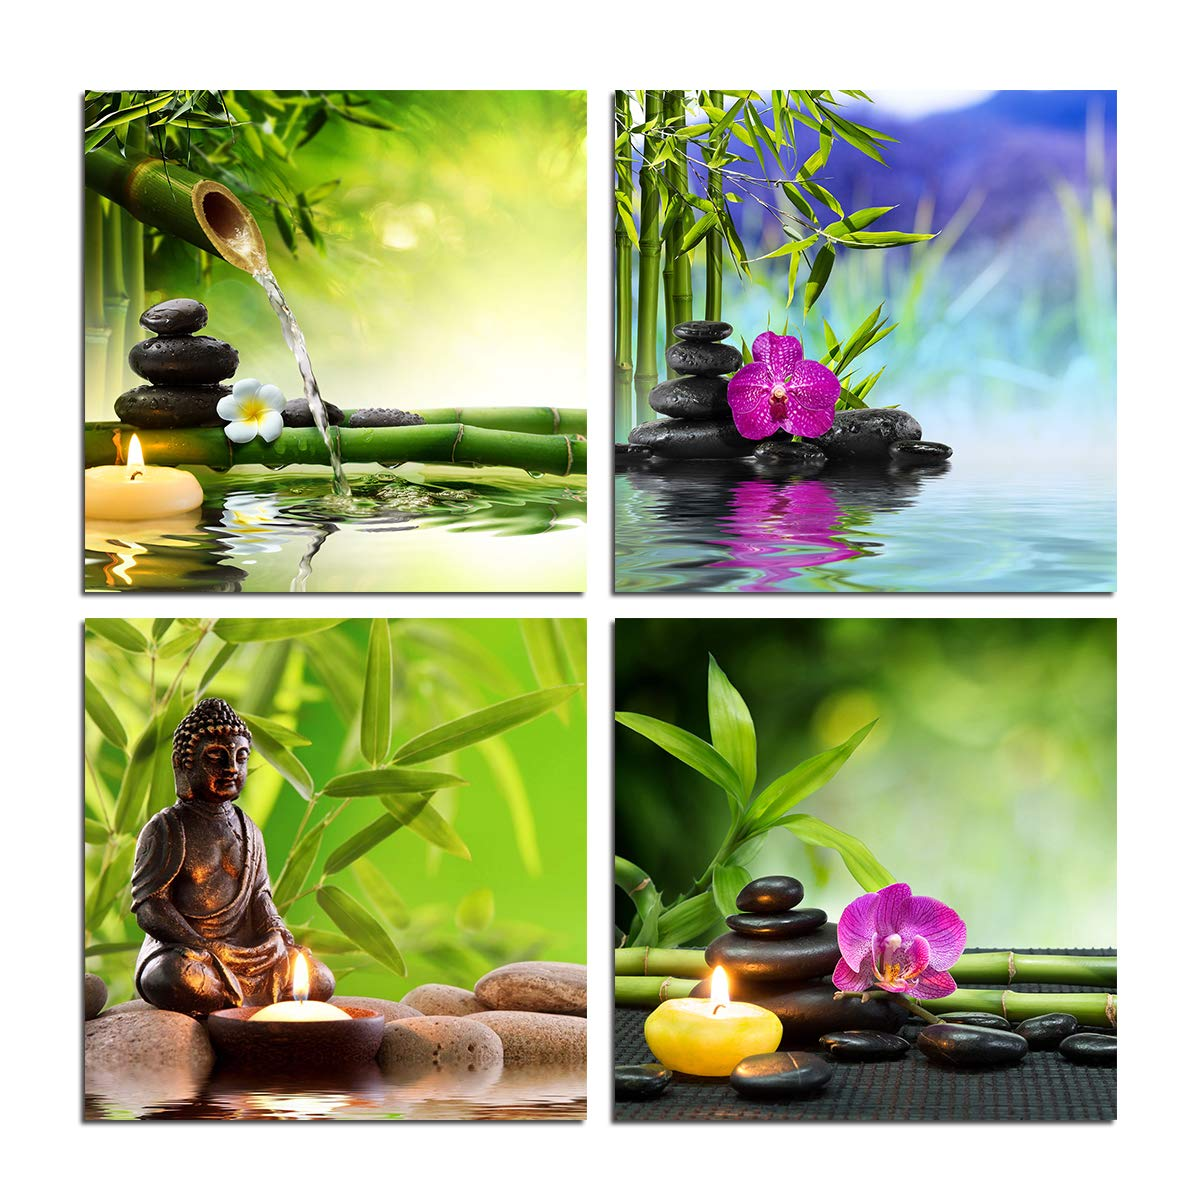 Zen Garden Wall Art Canvas - Spa Green Bamboo leaves Purple Orchid Stones Flowers Water Buddha Poster Aromatic Candle Still Life Home Decoration Yoga Modern Decor 4 Pieces Artwork Print Unframed